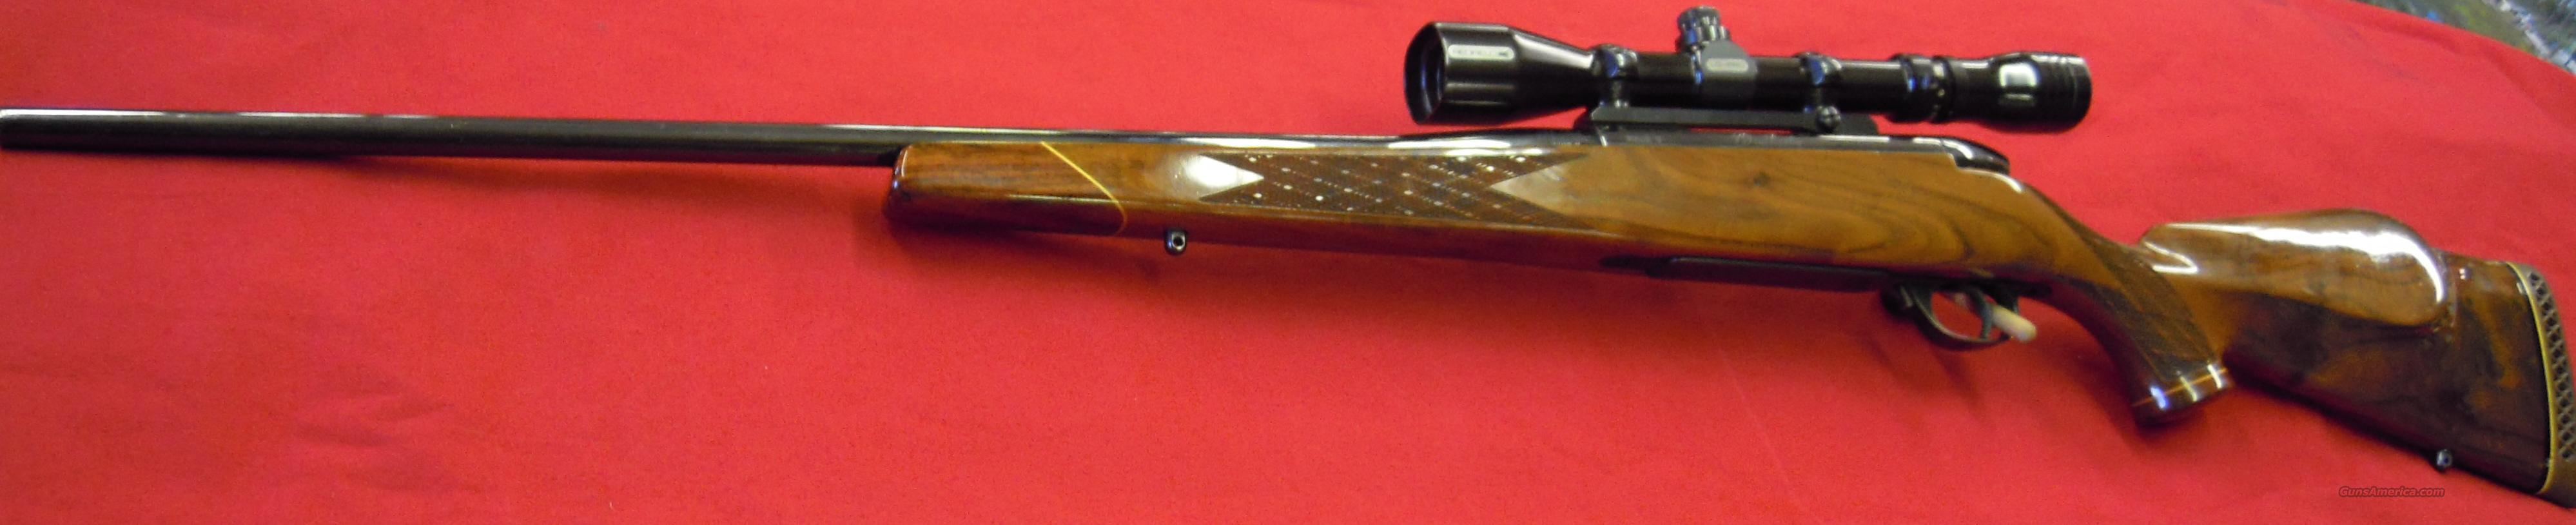 Weatherby Mark V Deluxe - Shot only to sight !!!!  Guns > Rifles > Weatherby Rifles > Sporting